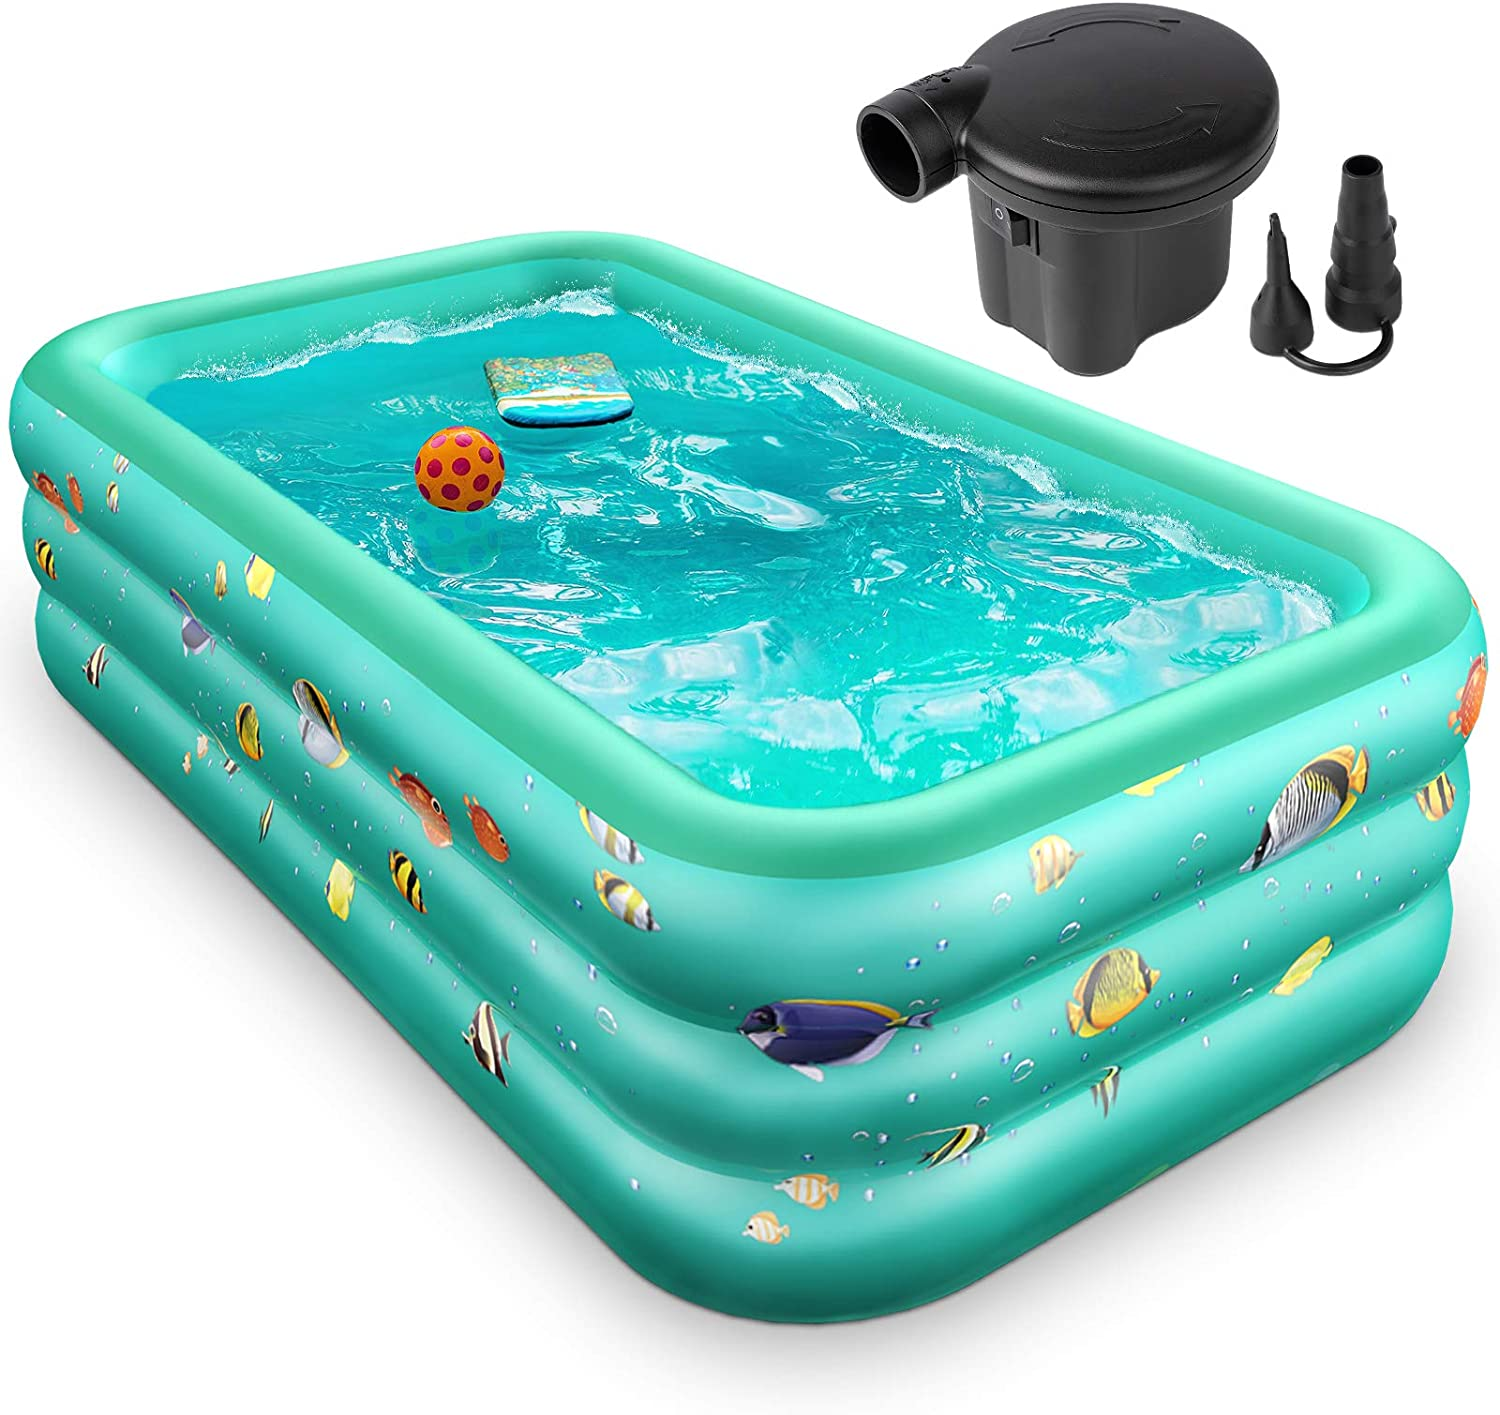 Inflatable Pool Regular discount Full-Sized Kiddie 96 Inch X 22 Large 57 Ranking TOP3